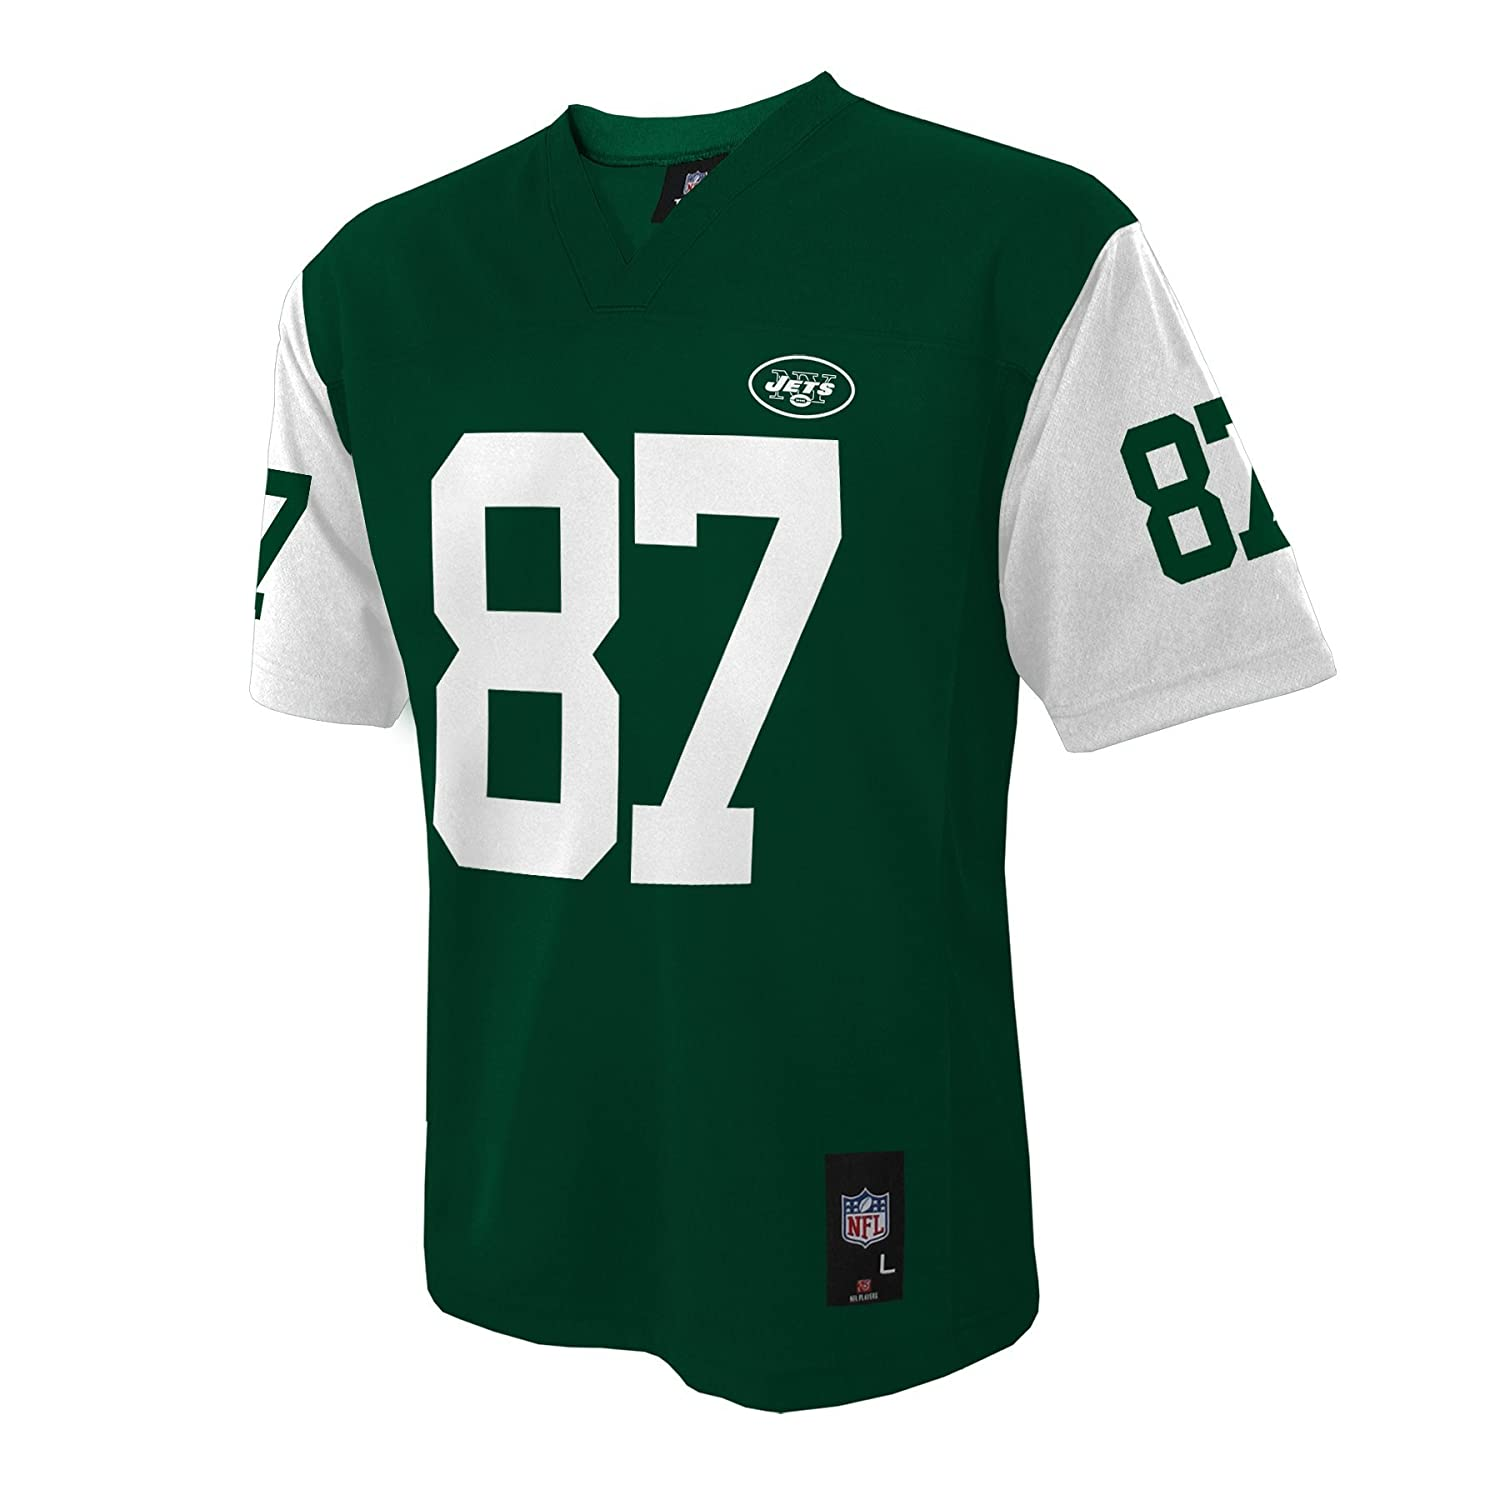 db1c493854e Amazon.com : NFL New York Jets Eric Decker Youth 8-20 Mid-Tier Jersey :  Sports & Outdoors